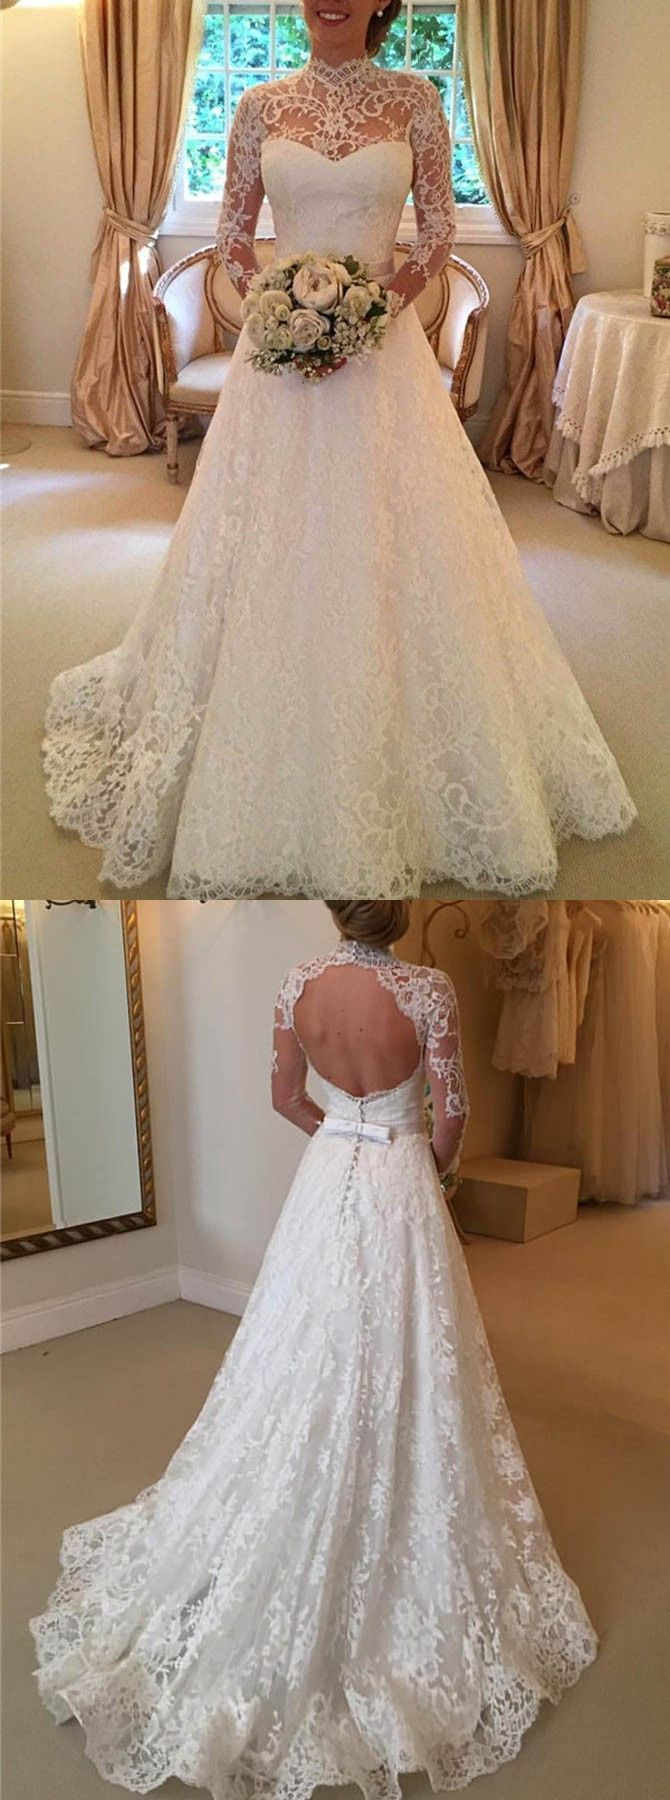 Types of wedding cakes for theme weddings bridal gowns pinterest